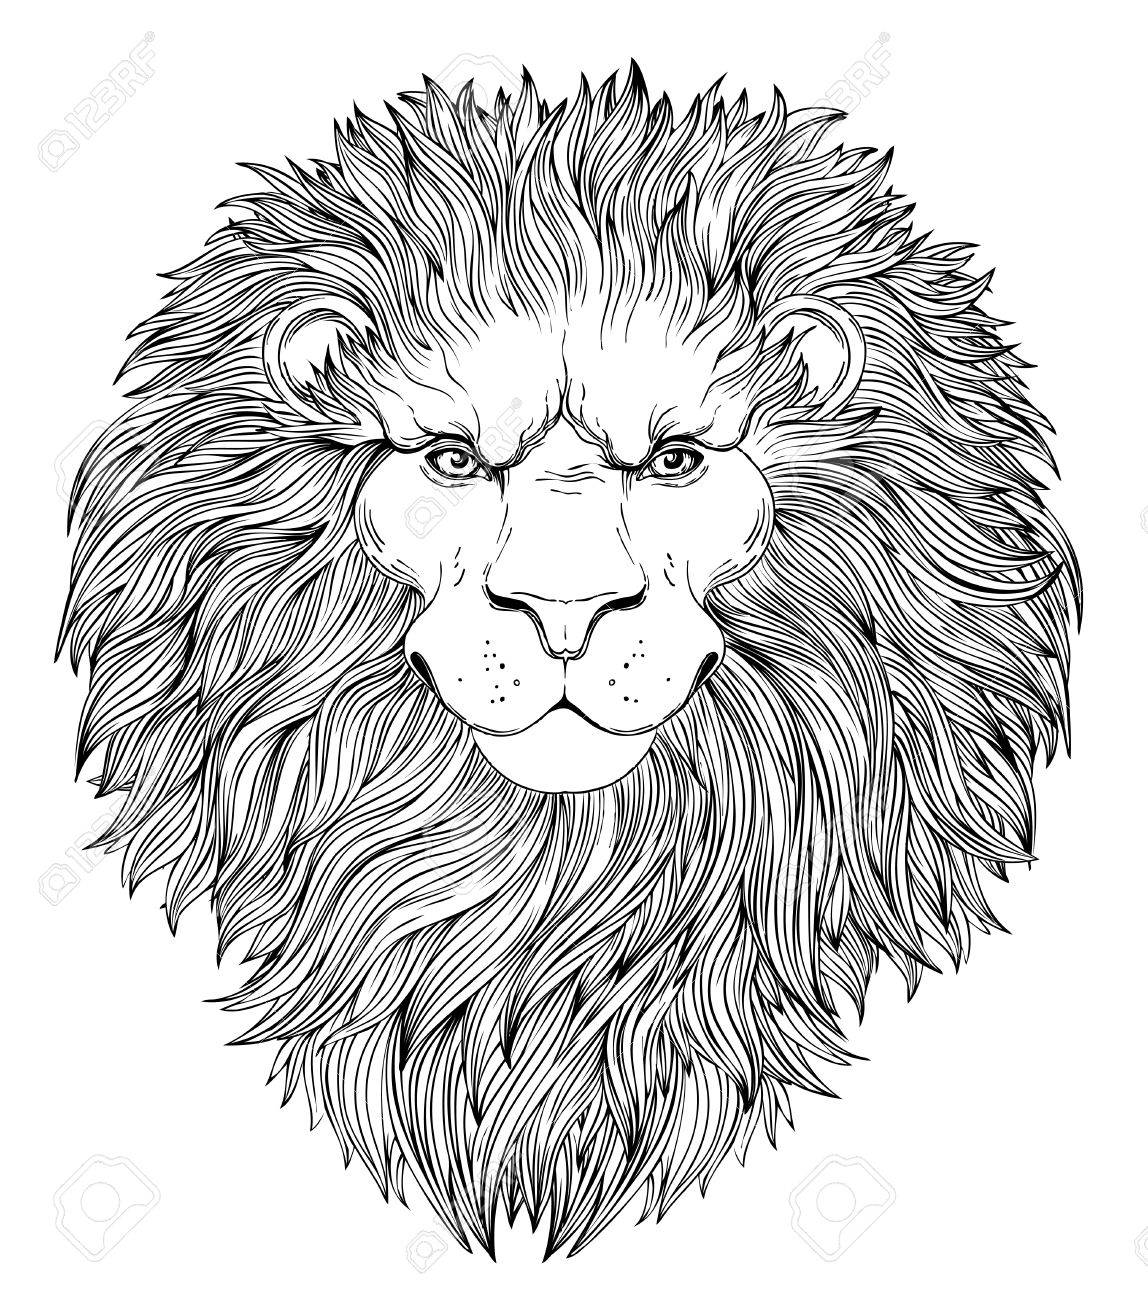 1148x1300 Decorative Illustration Of Heraldic Lion Head With Royal Crown